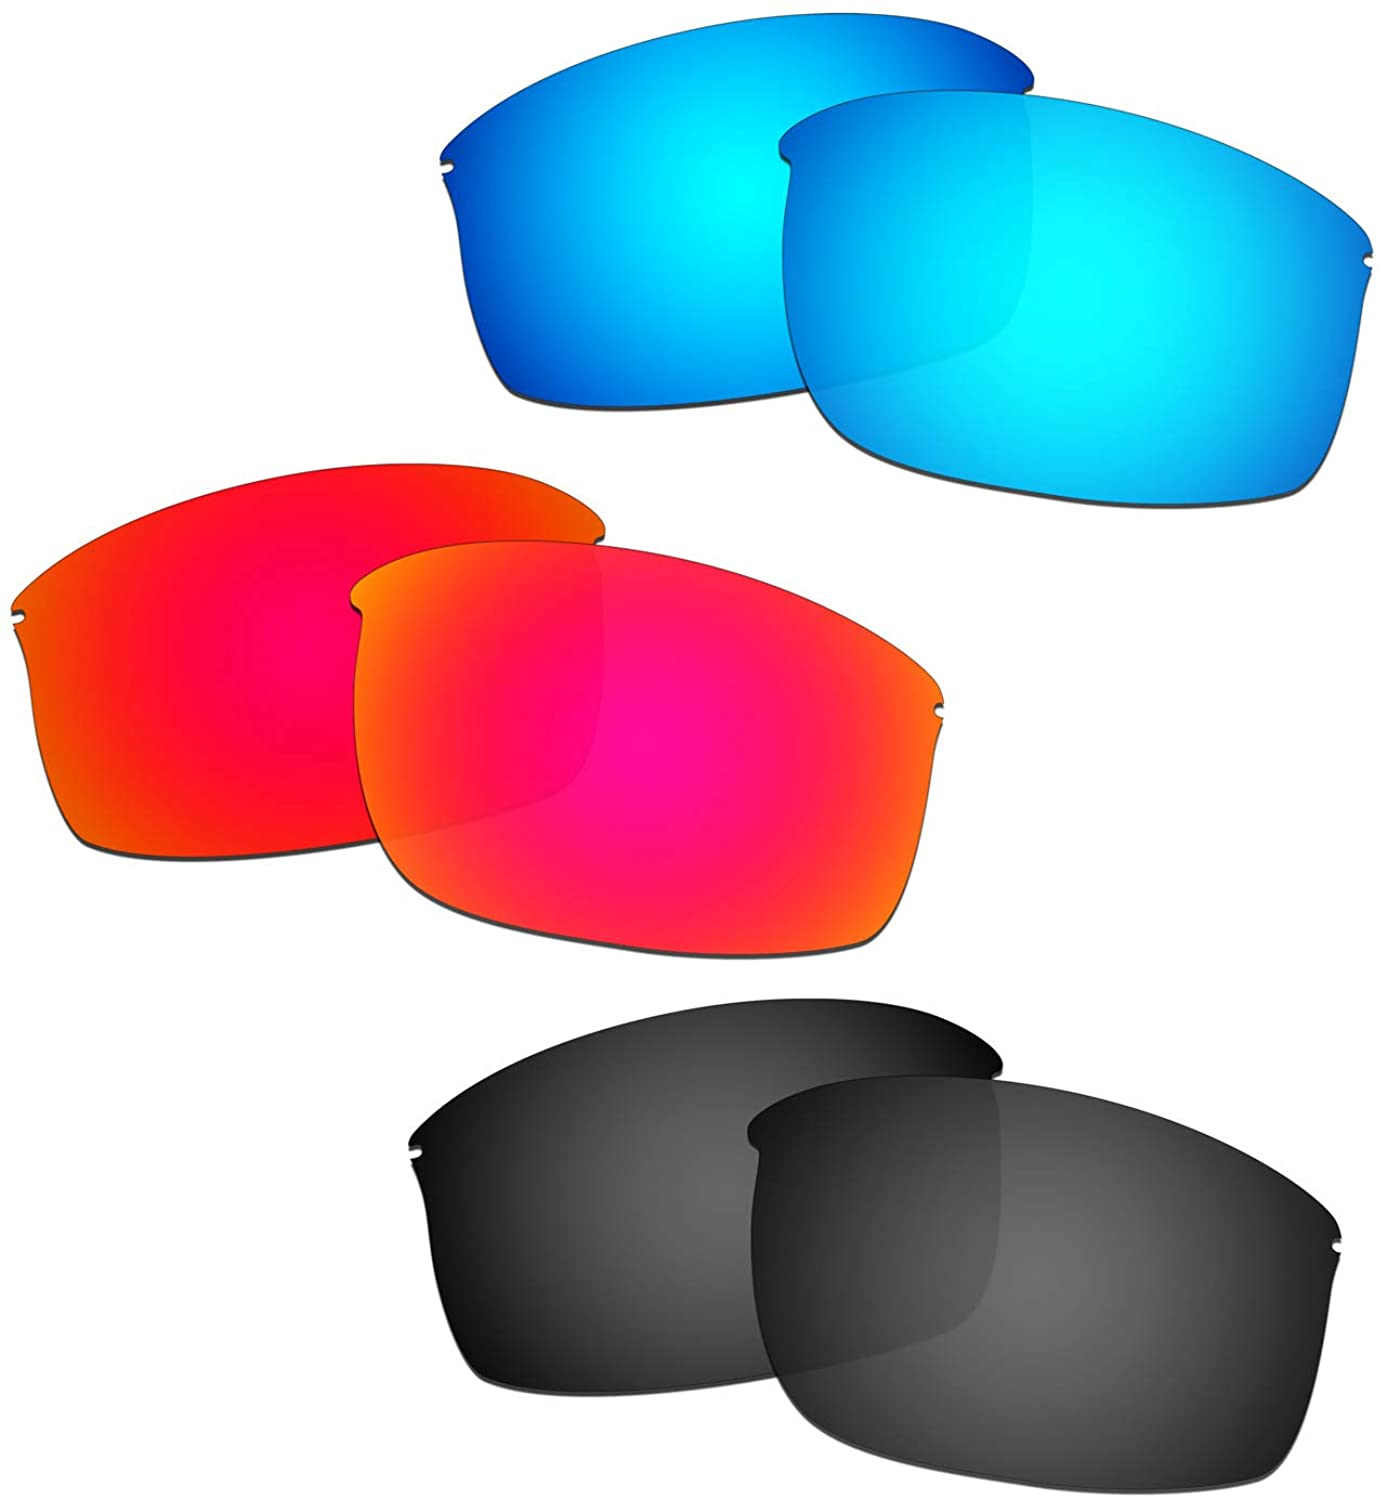 HKUCO Reinforce Replacement Lenses For Oakley Wiretap New Red/Blue/Black Sunglasses